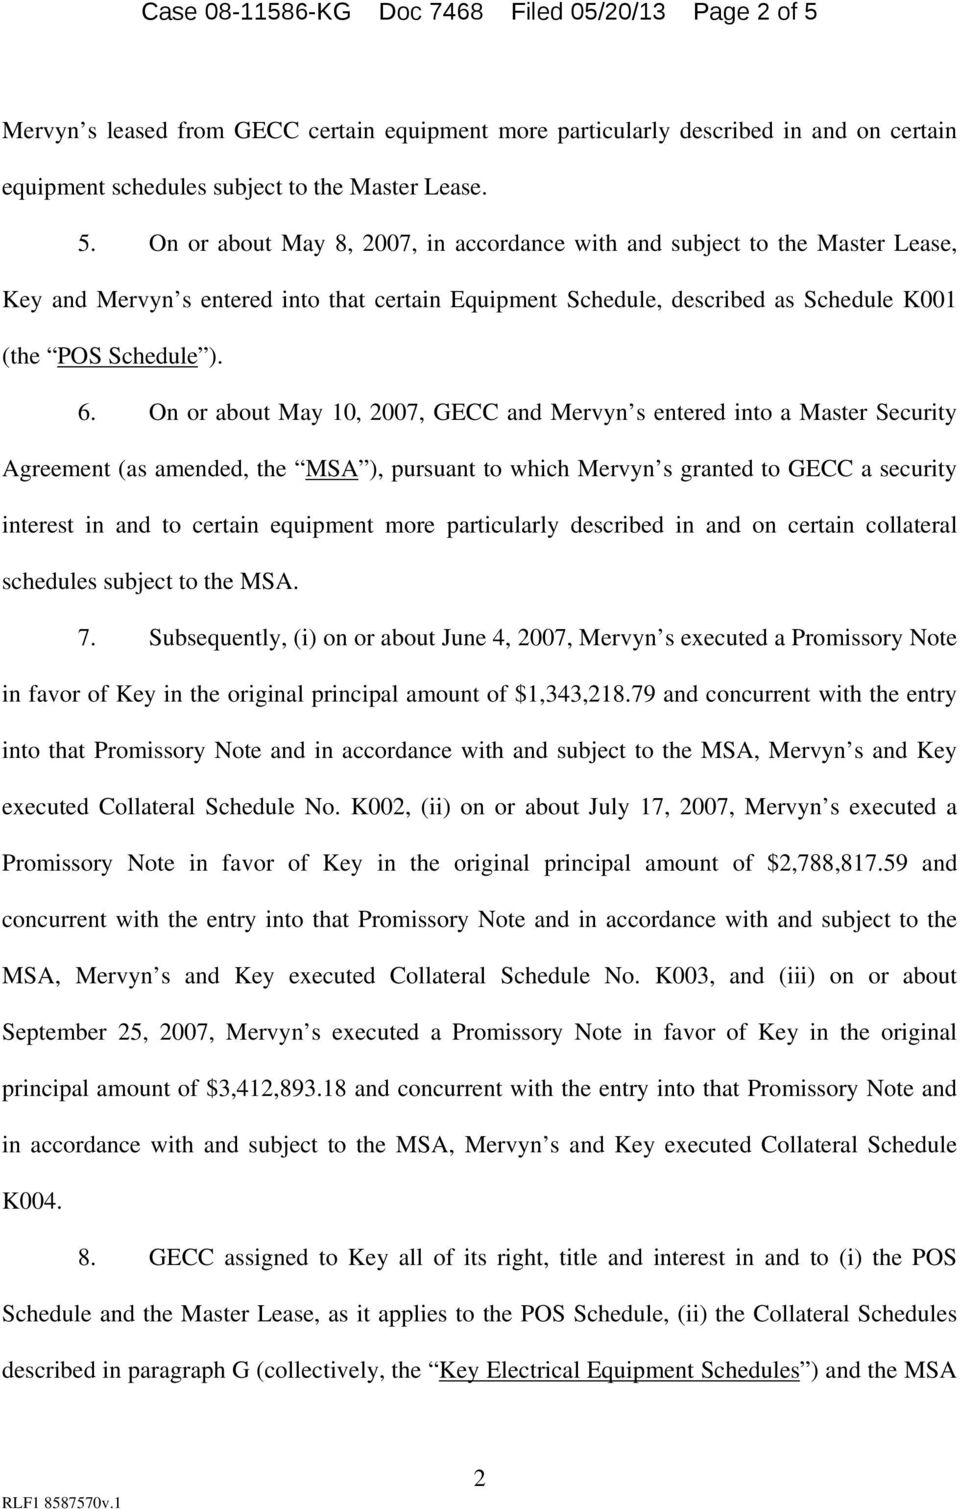 On or about May 8, 2007, in accordance with and subject to the Master Lease, Key and Mervyn s entered into that certain Equipment Schedule, described as Schedule K001 (the POS Schedule ). 6.